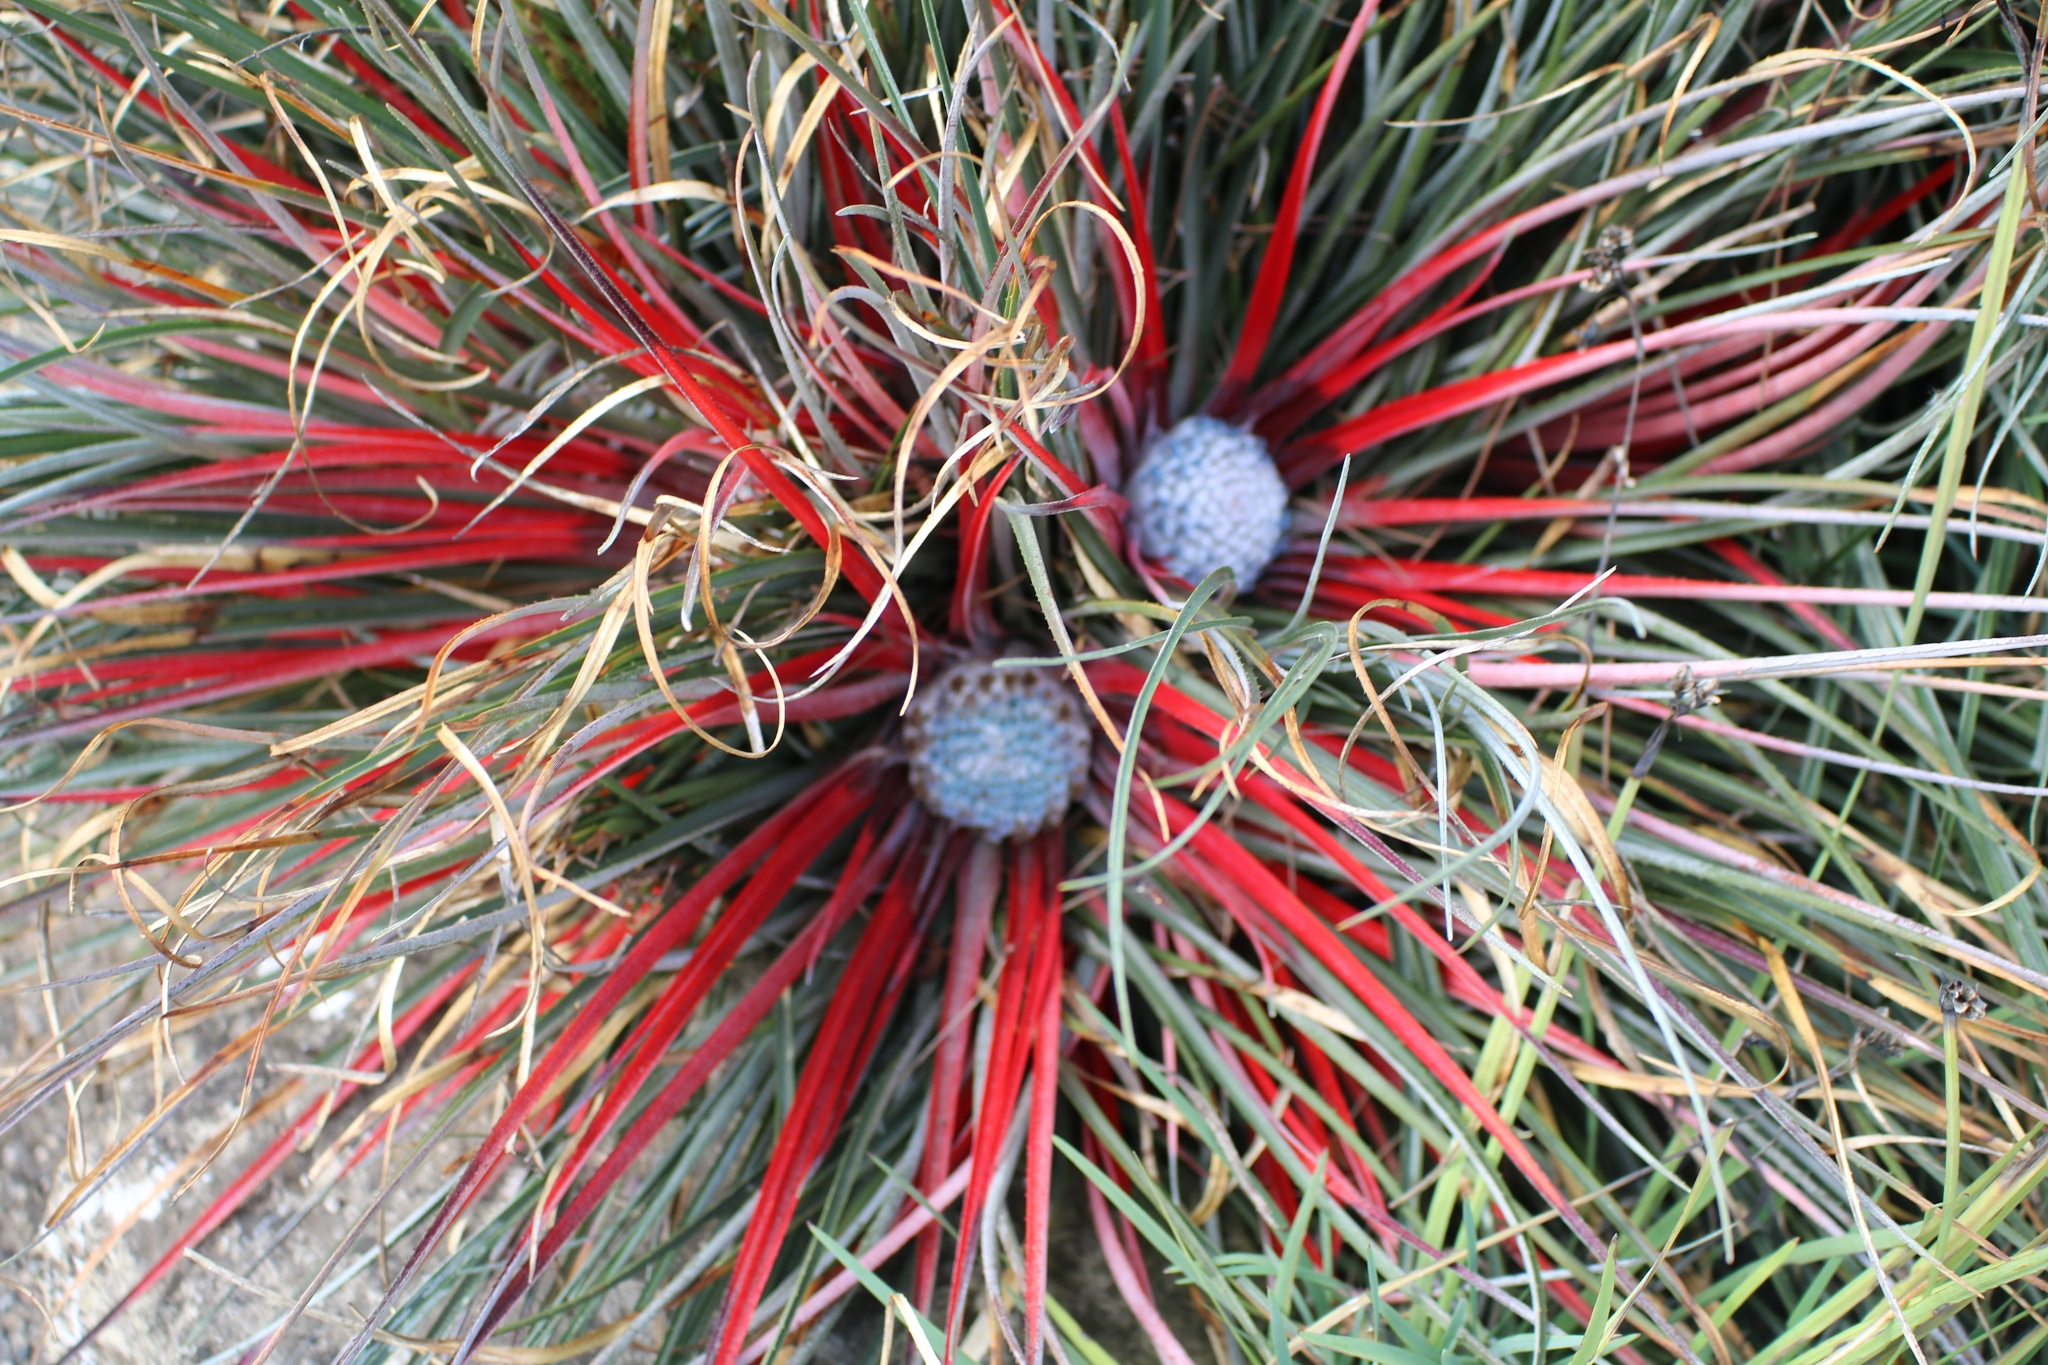 These are not golf balls - what an unusual spider plant. by Mo Dessouki